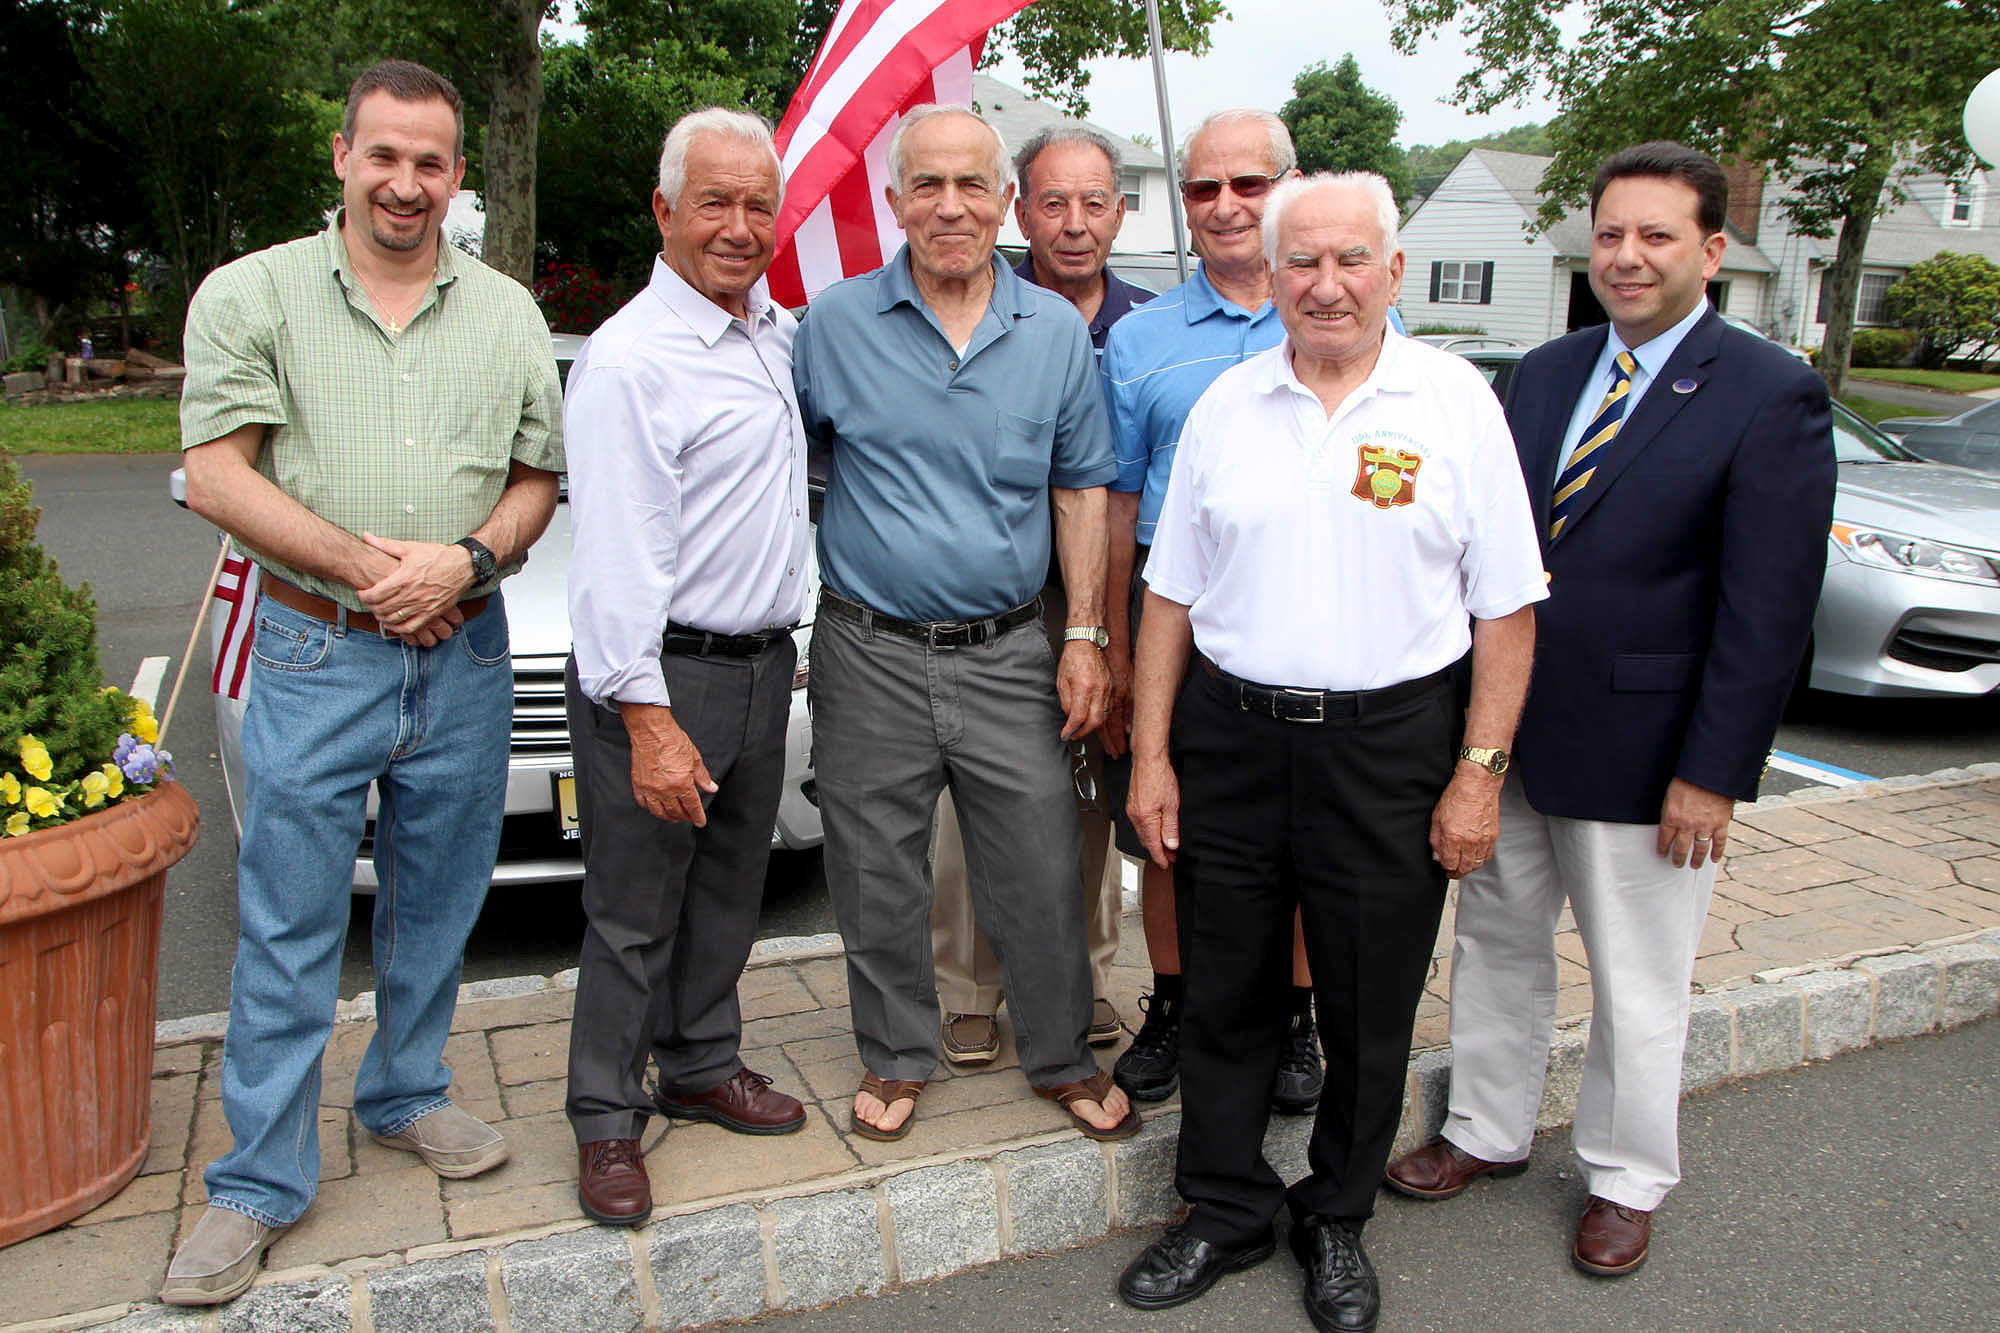 Italian American: Scotch Plains Italian American Club Dedicates Montazzoli